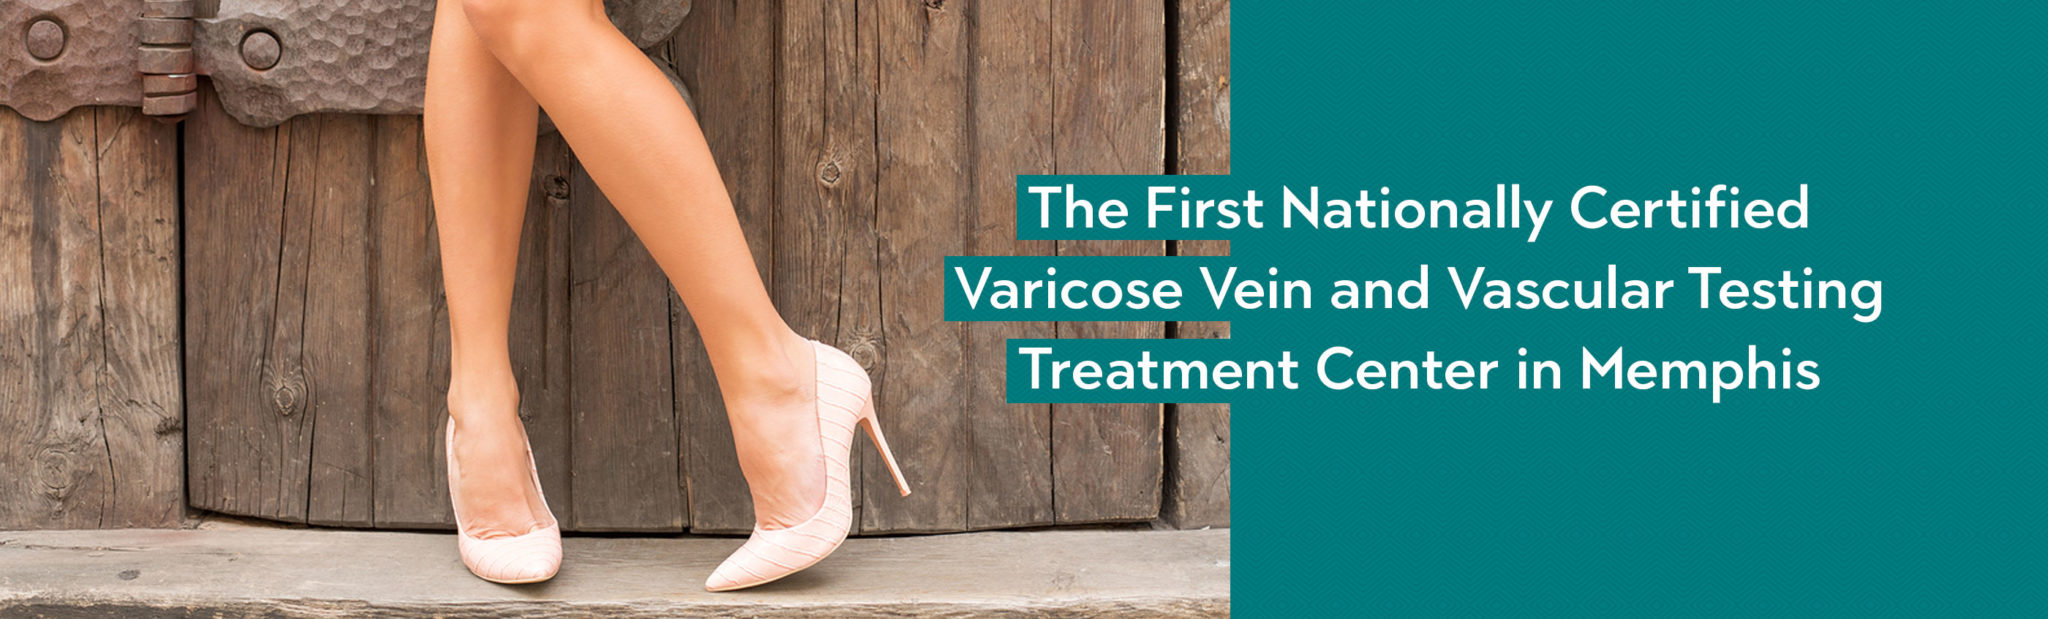 Varicose Veins Treatment Center in Memphis that offers vein